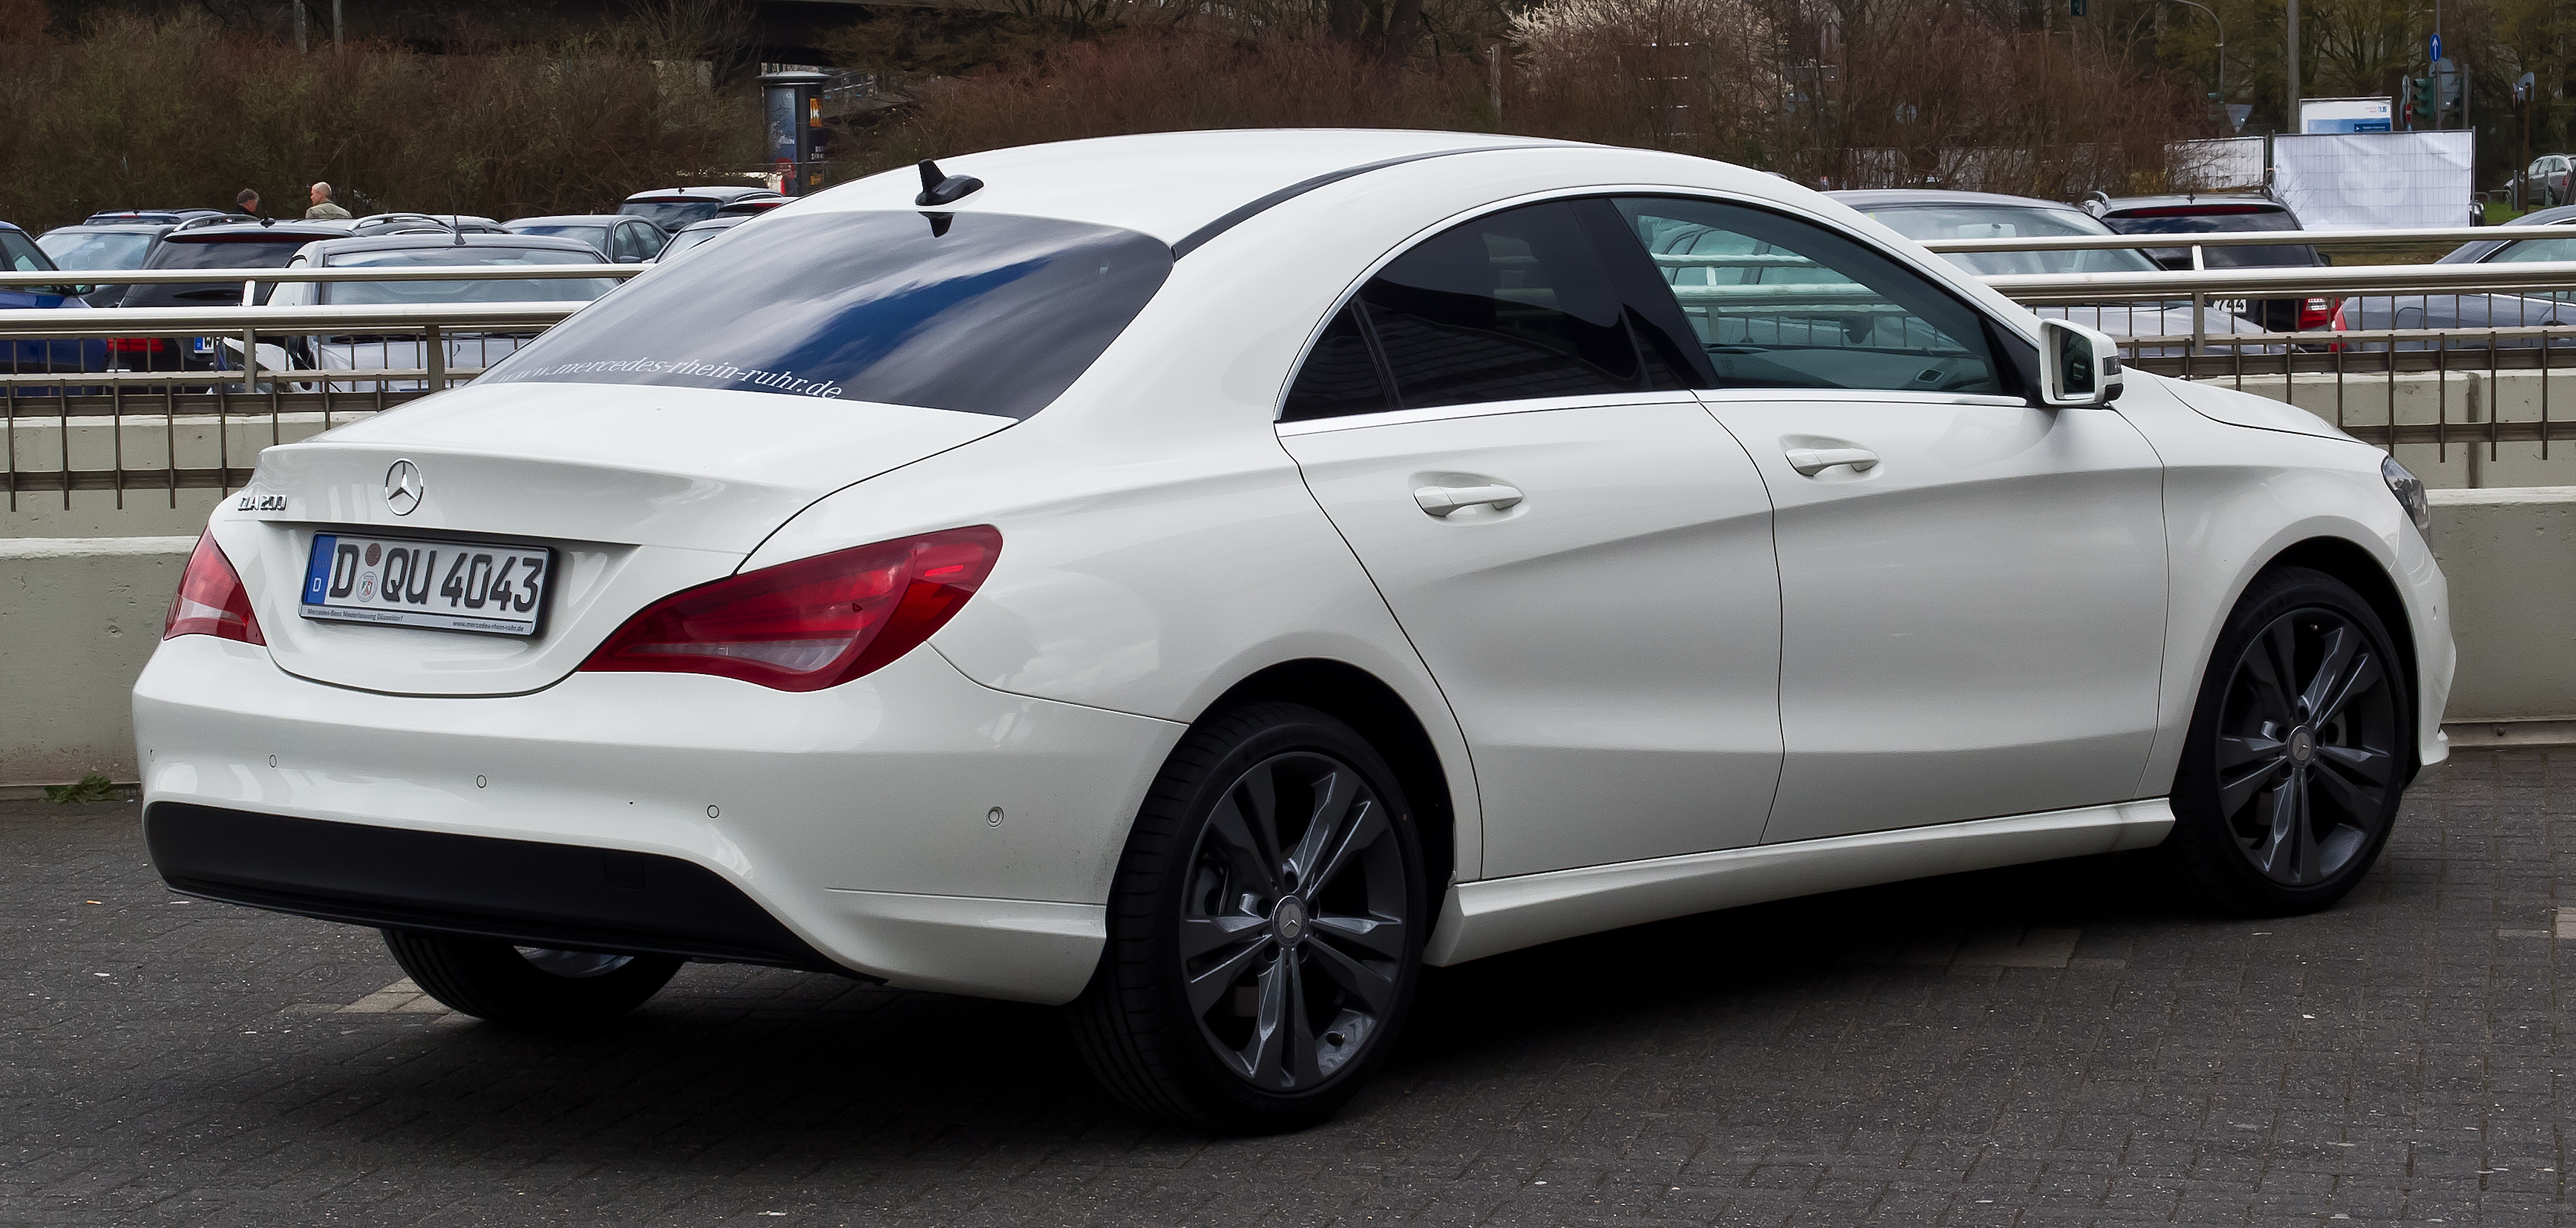 Mercedes Benz CLA Class  Exterior Rear Side View